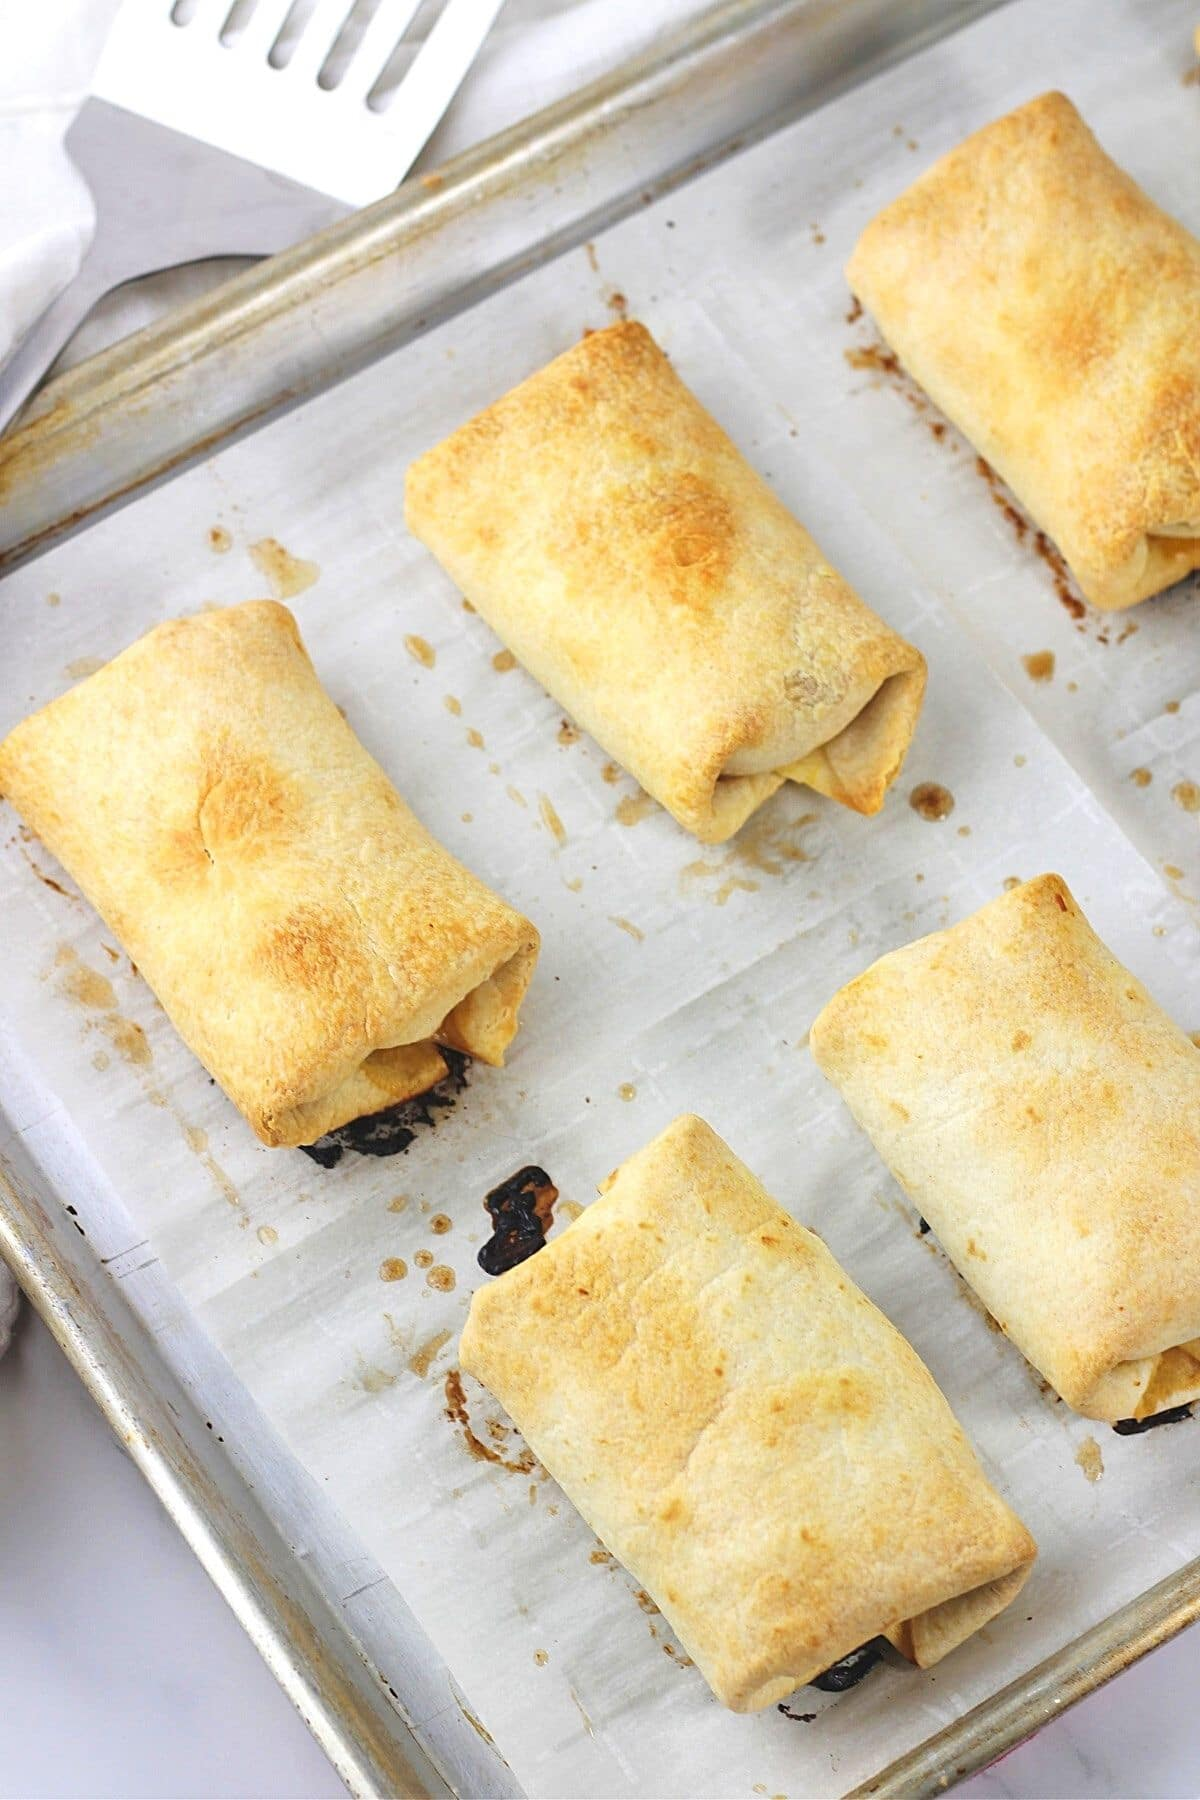 baked chicken chimichangas on a baking sheet with parchment paper